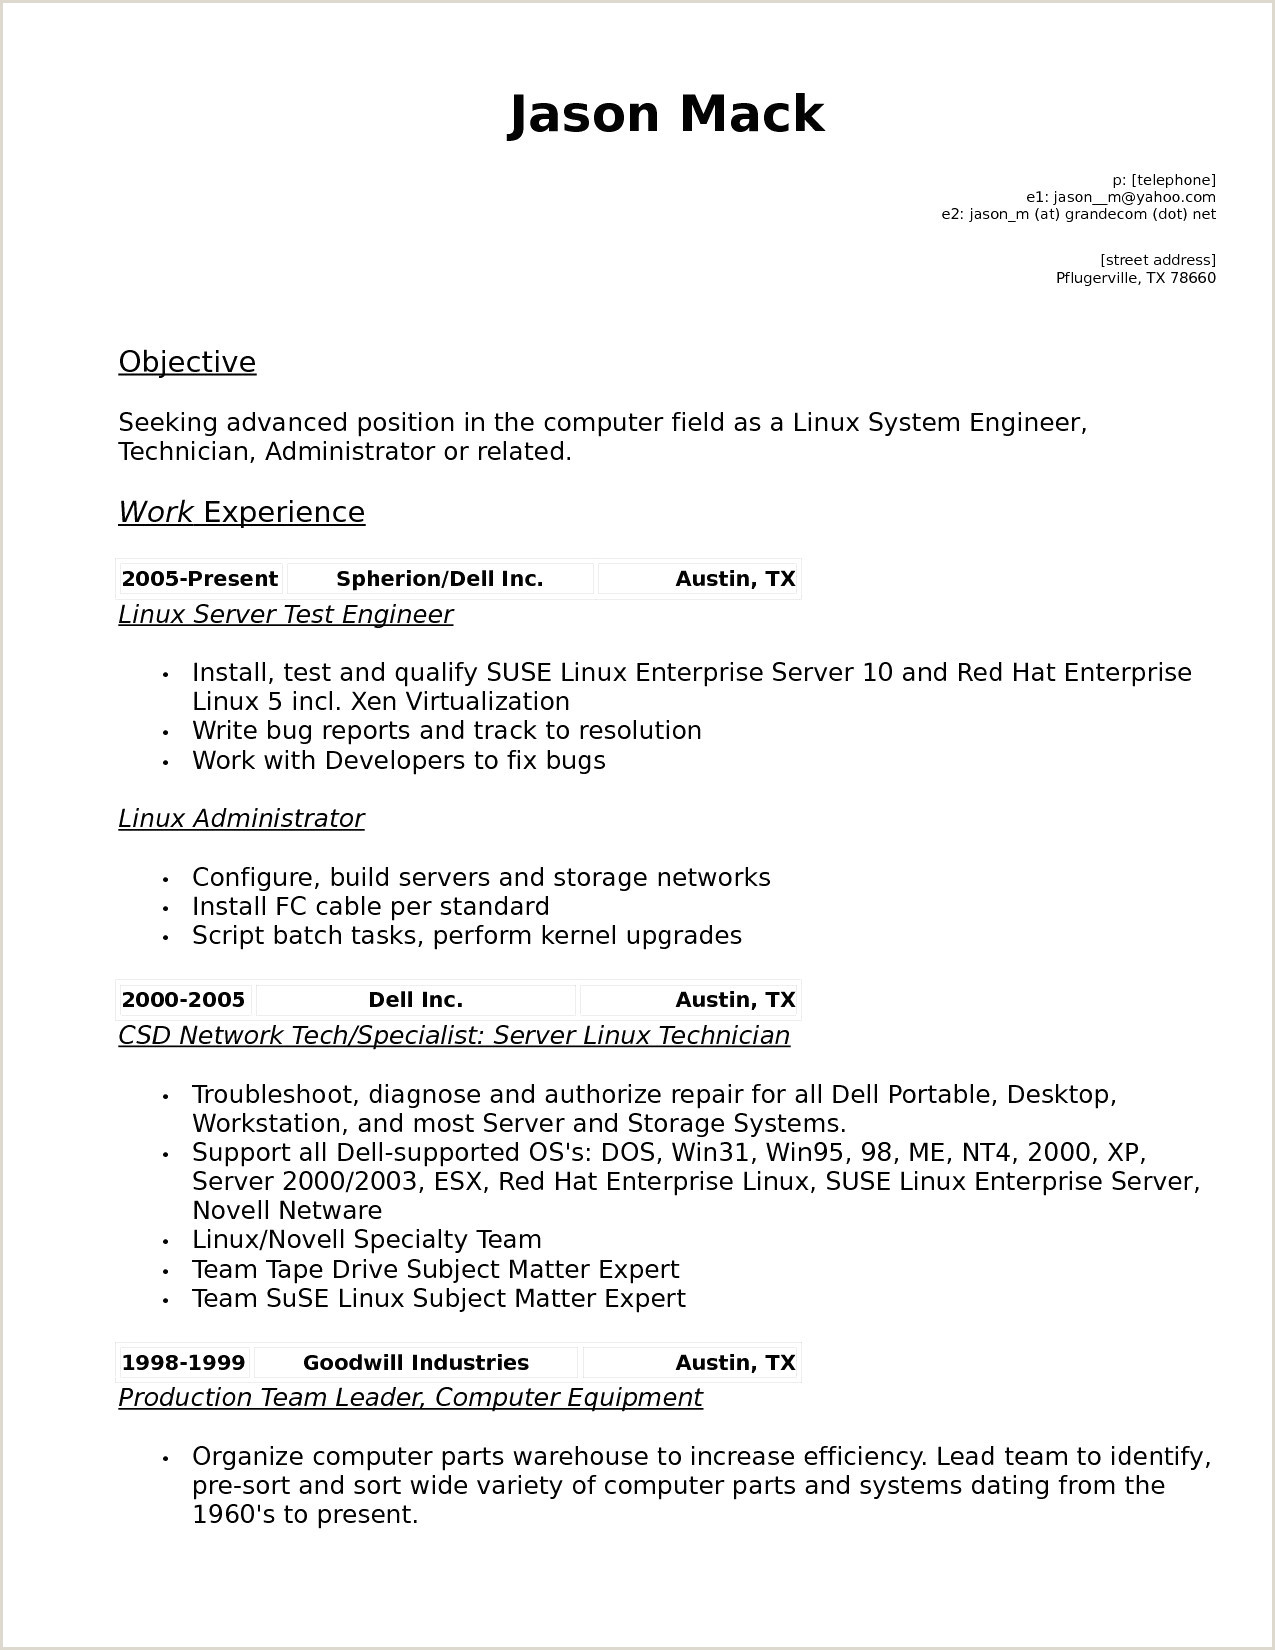 Resume format for Hospital Job Hospital Cover Letter New Cover Letter Moving to New City